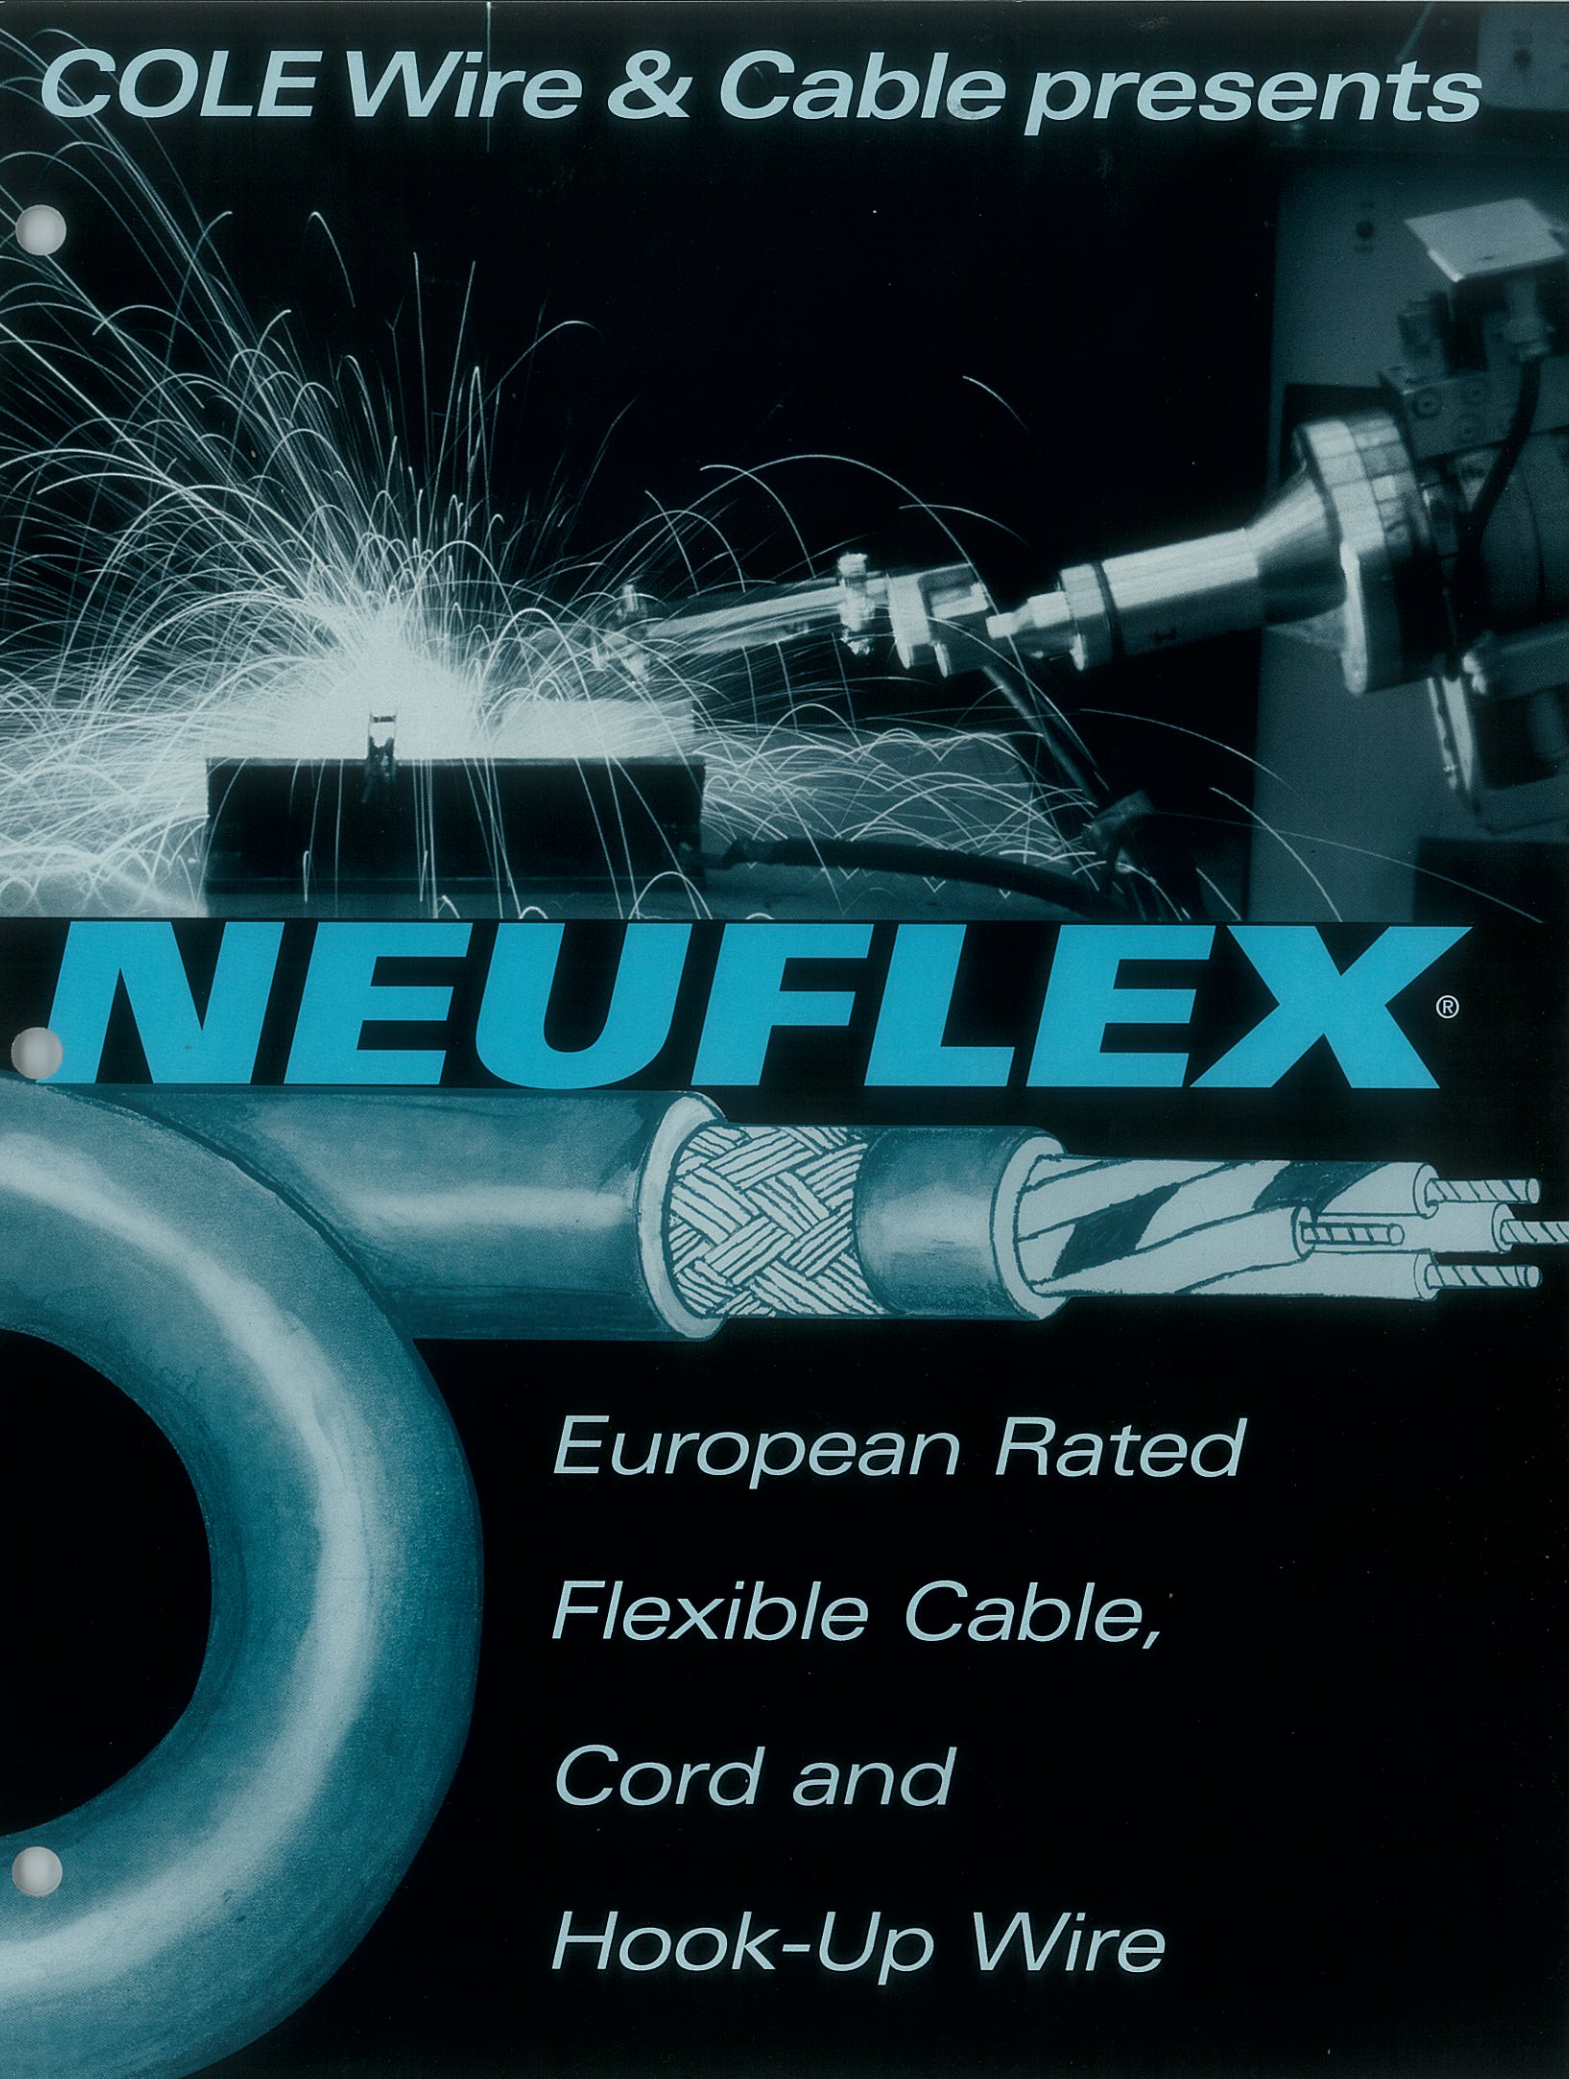 Neuflex Brochure | Cole Wire